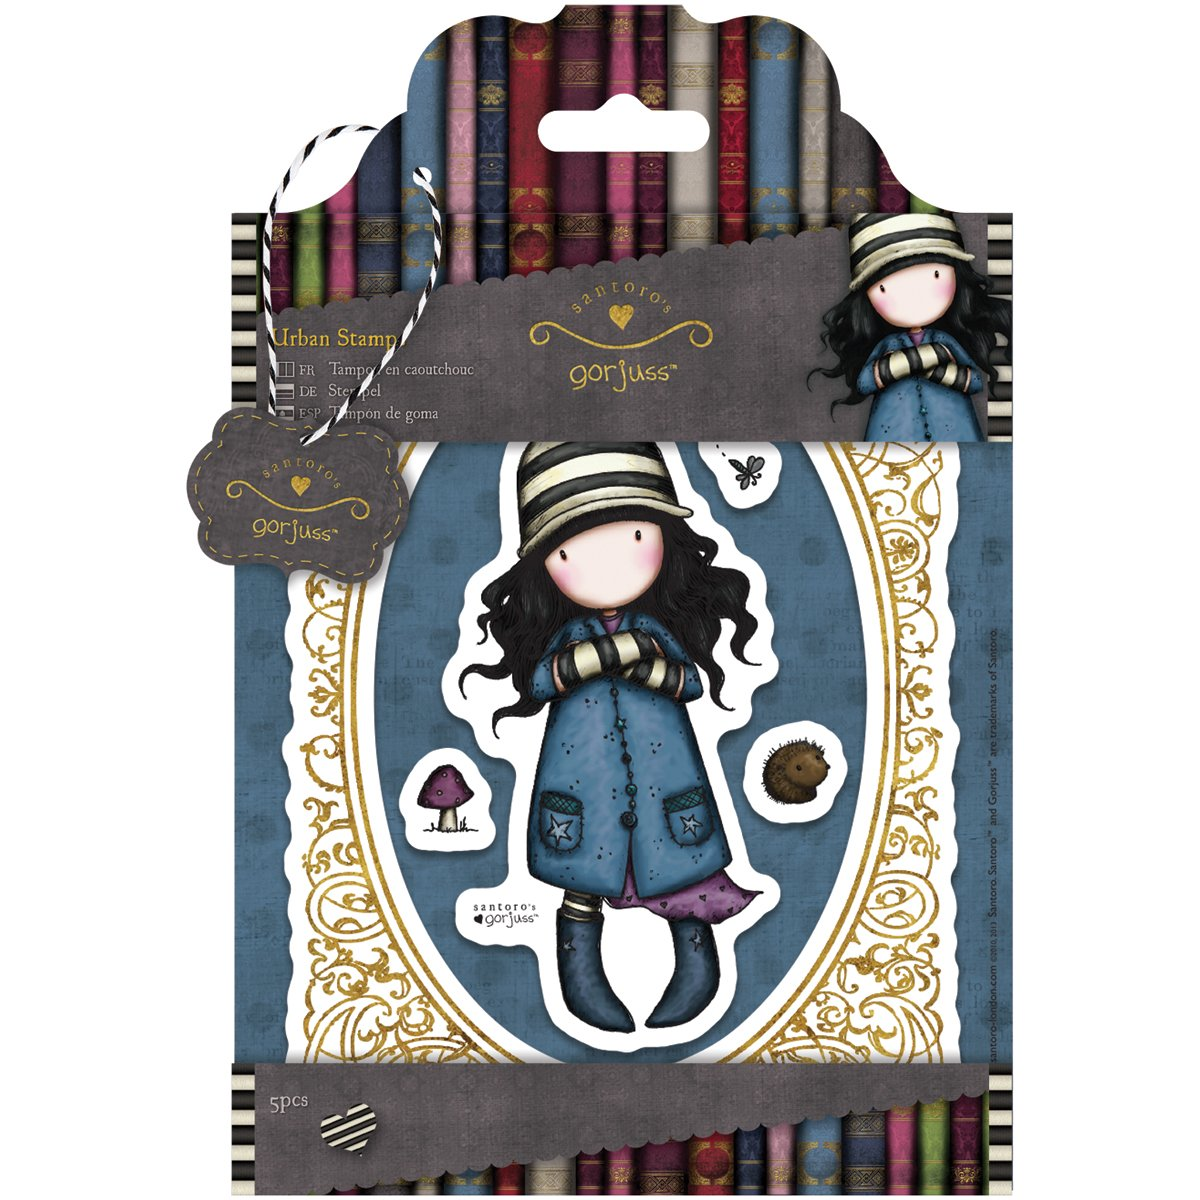 Simply Gorjuss - Set di 5 targhette decorative, serie: Toadstools Urban Stamps Docrafts GOR 907116